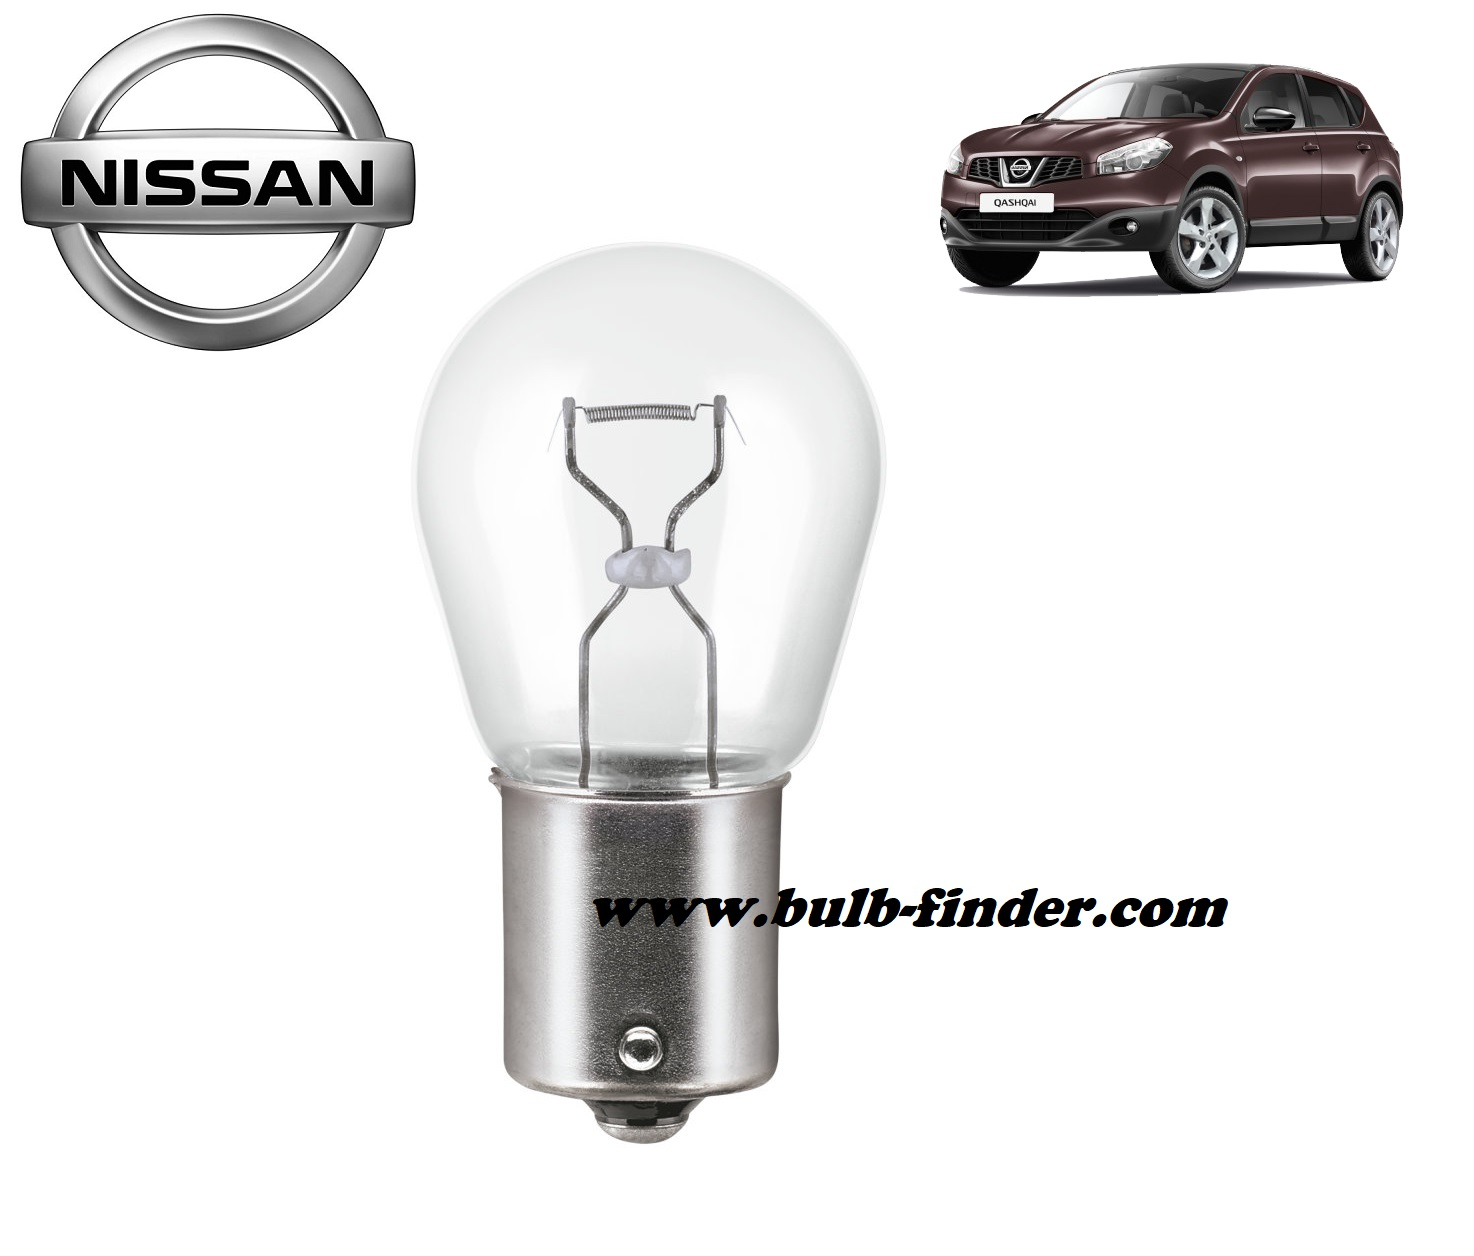 Nissan Qashqai bulb model REAR FOG LAMP